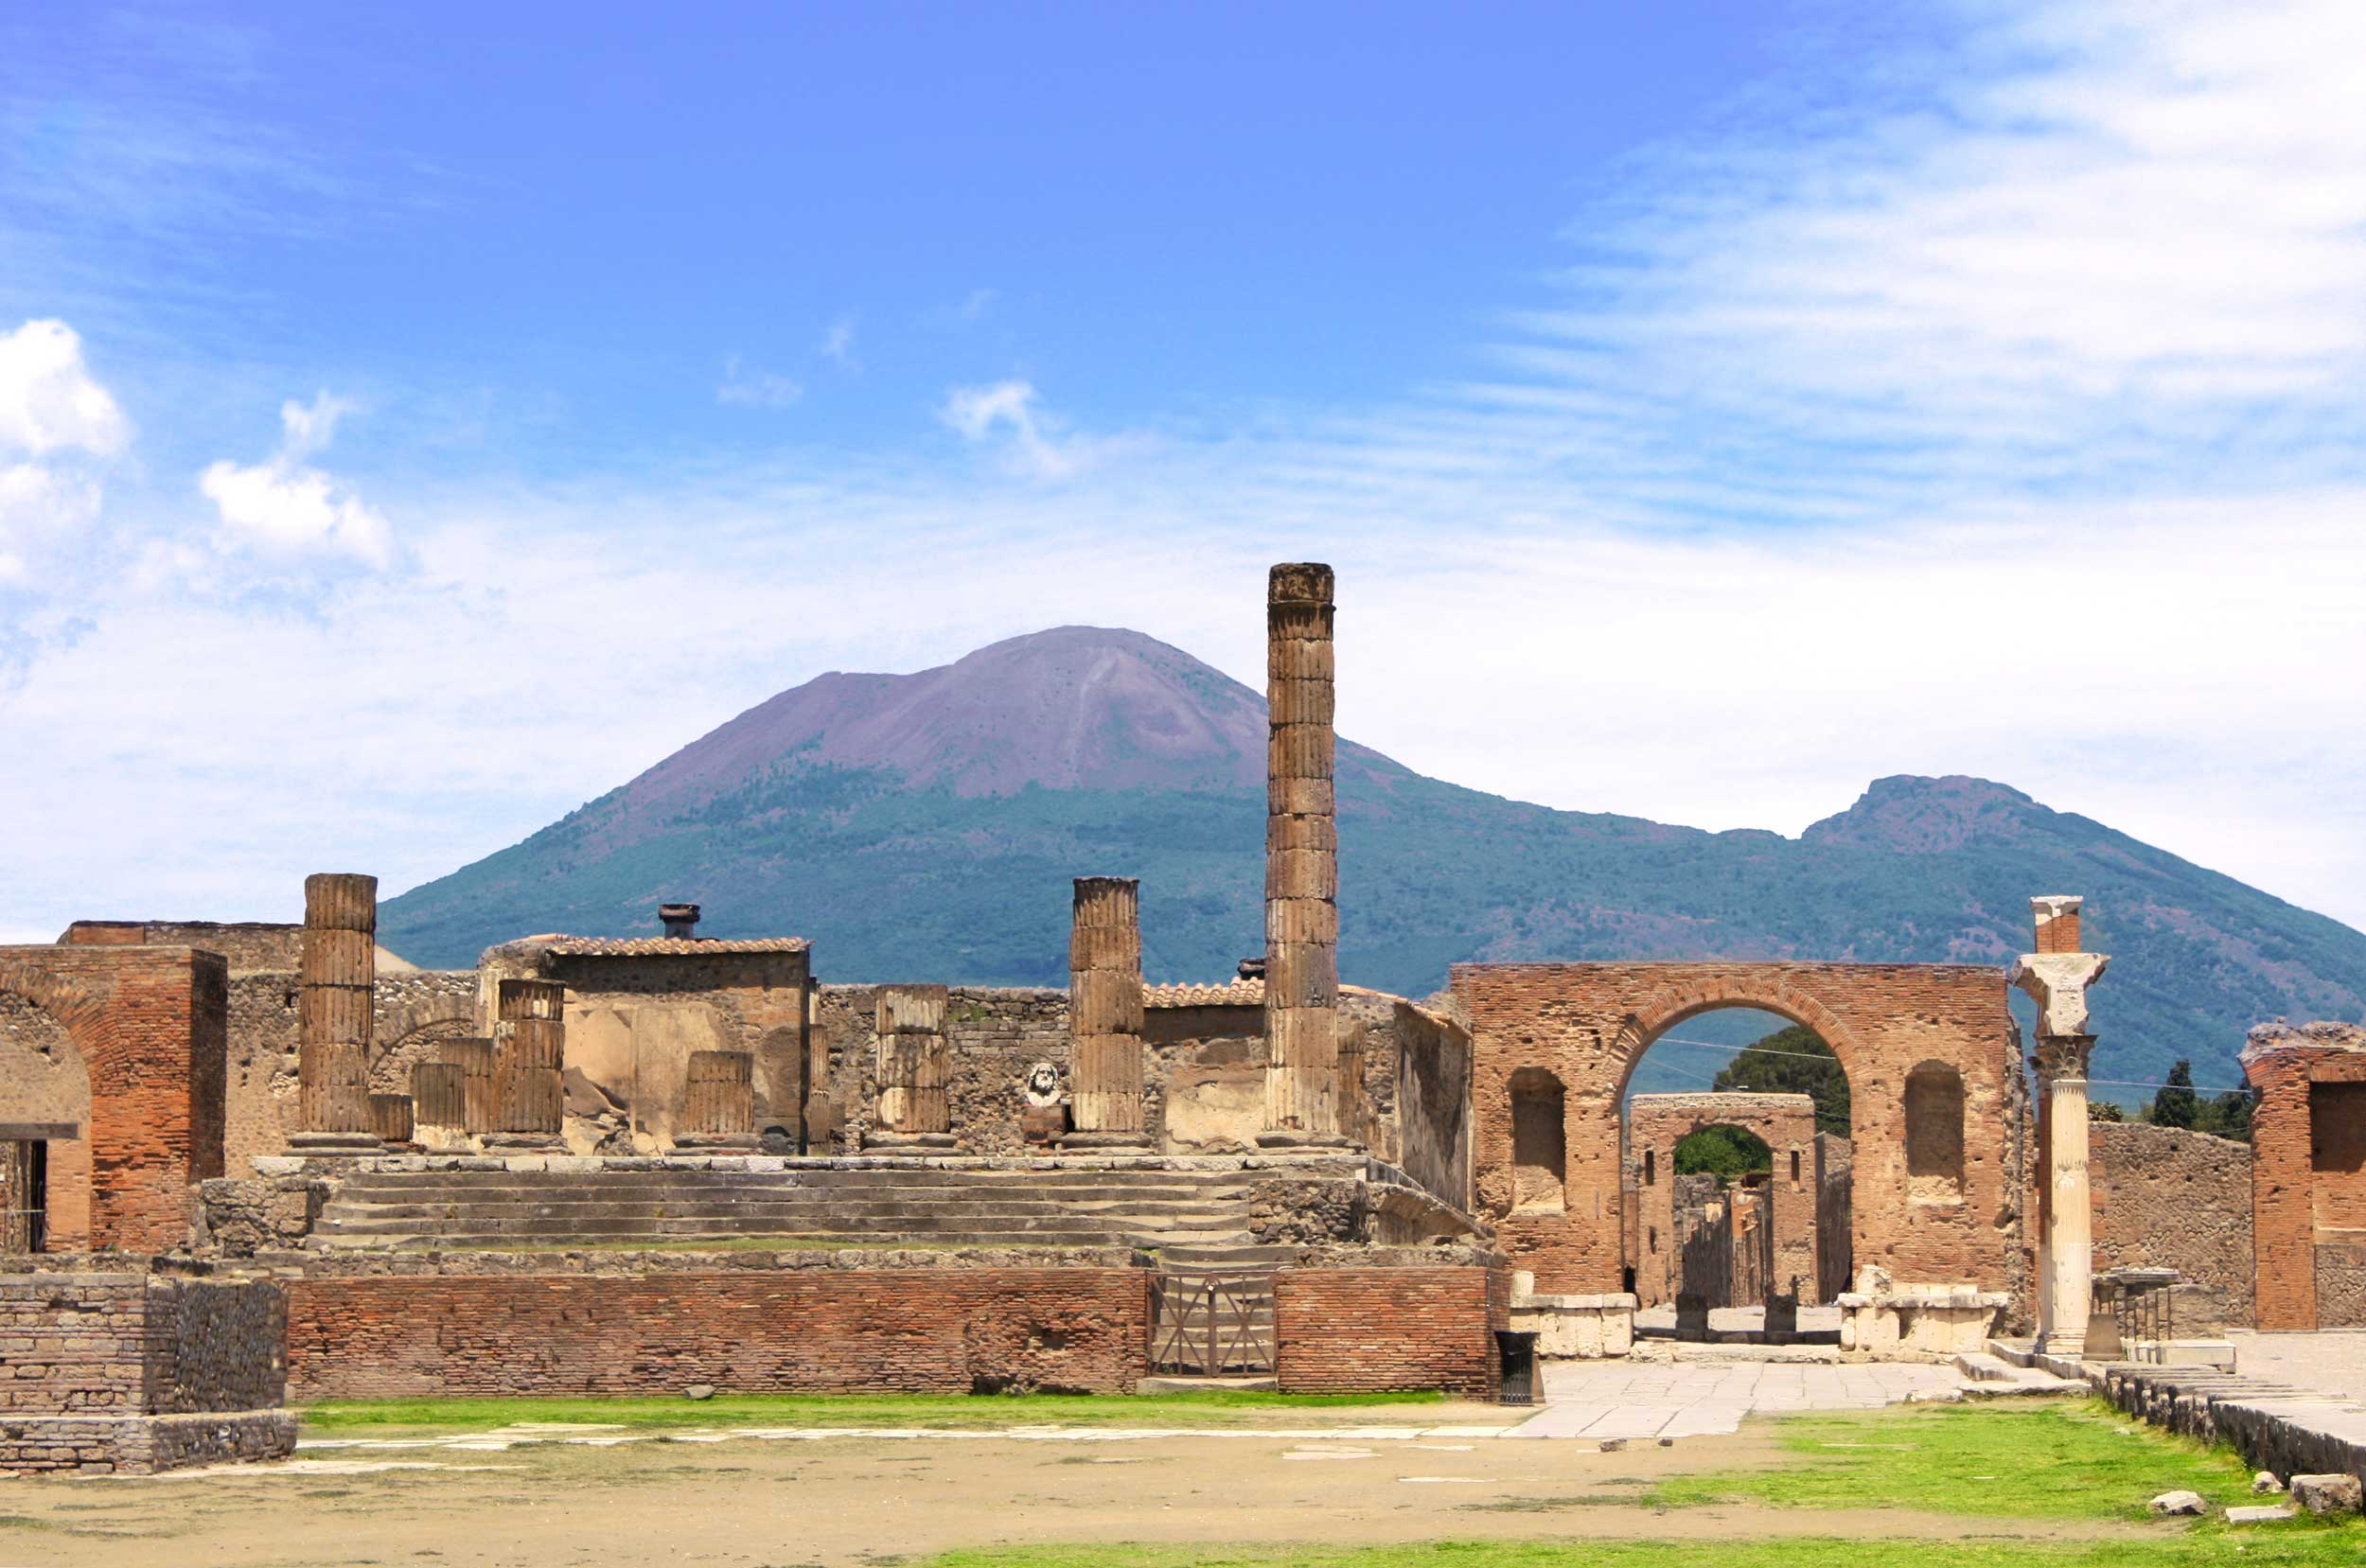 Roman ruins and a volcanic mountain in the background, Pompeii